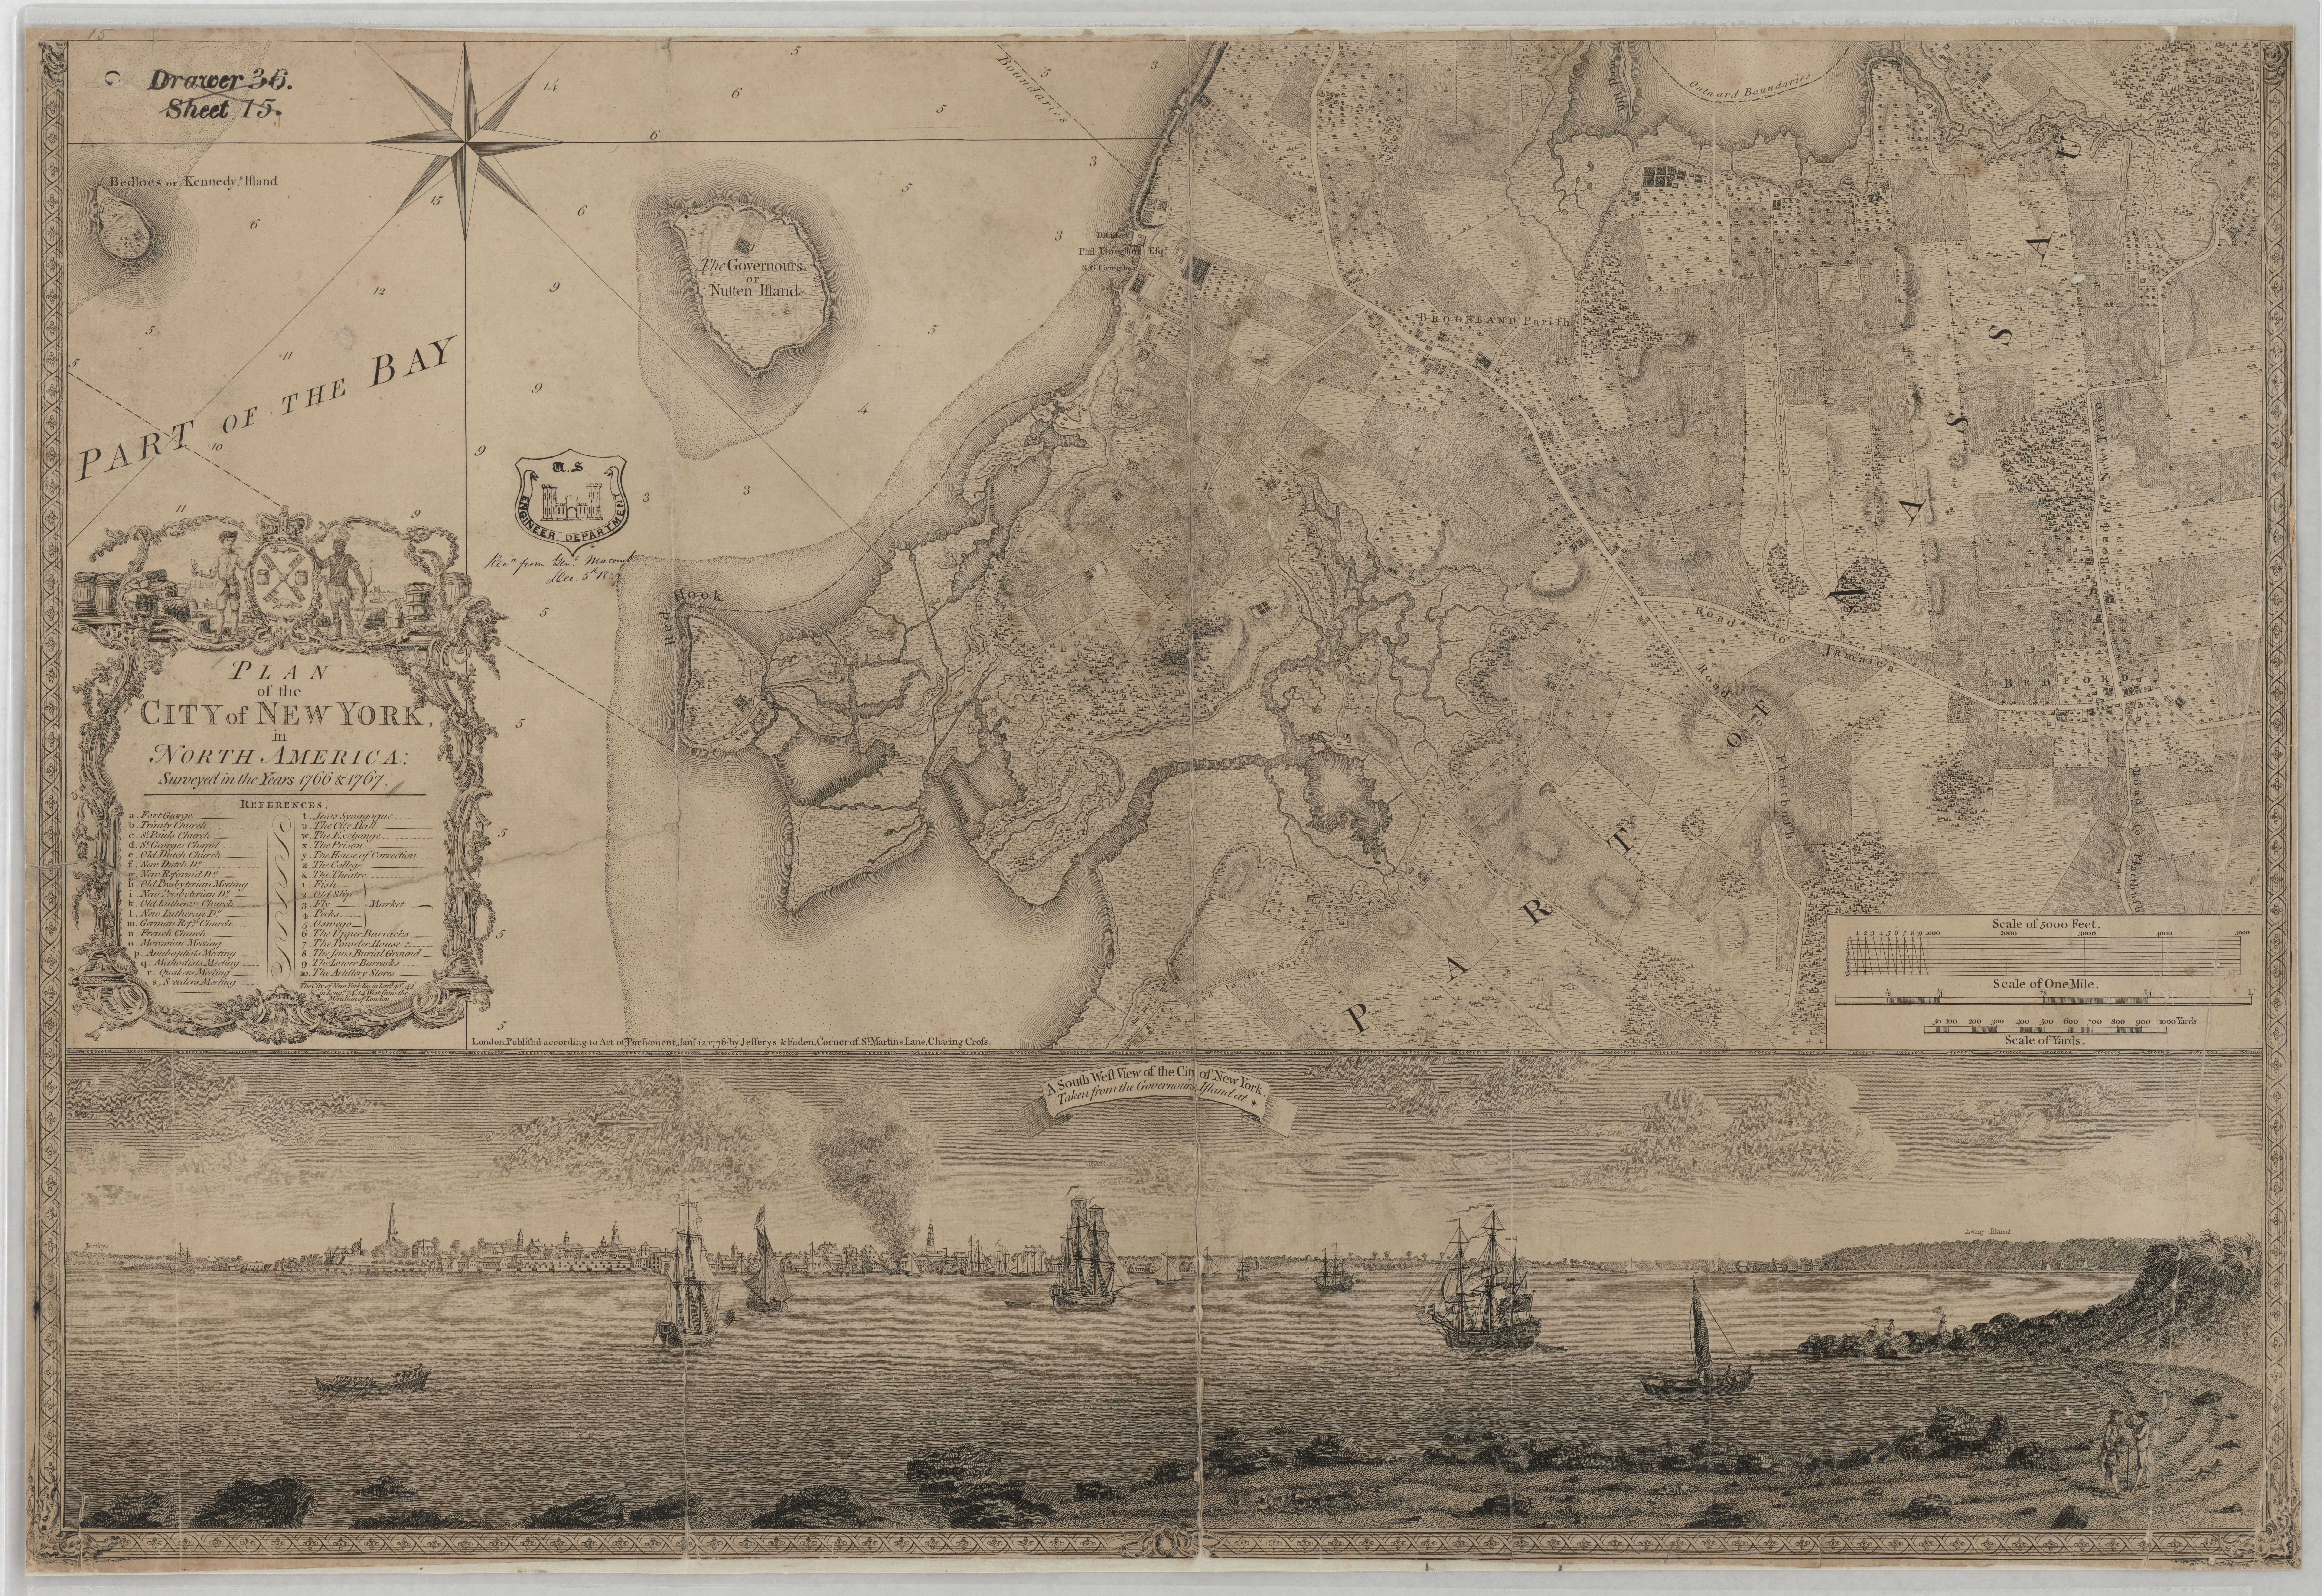 Plan of the City of New York in North America: Surveyed in the years 1766 and 1767.